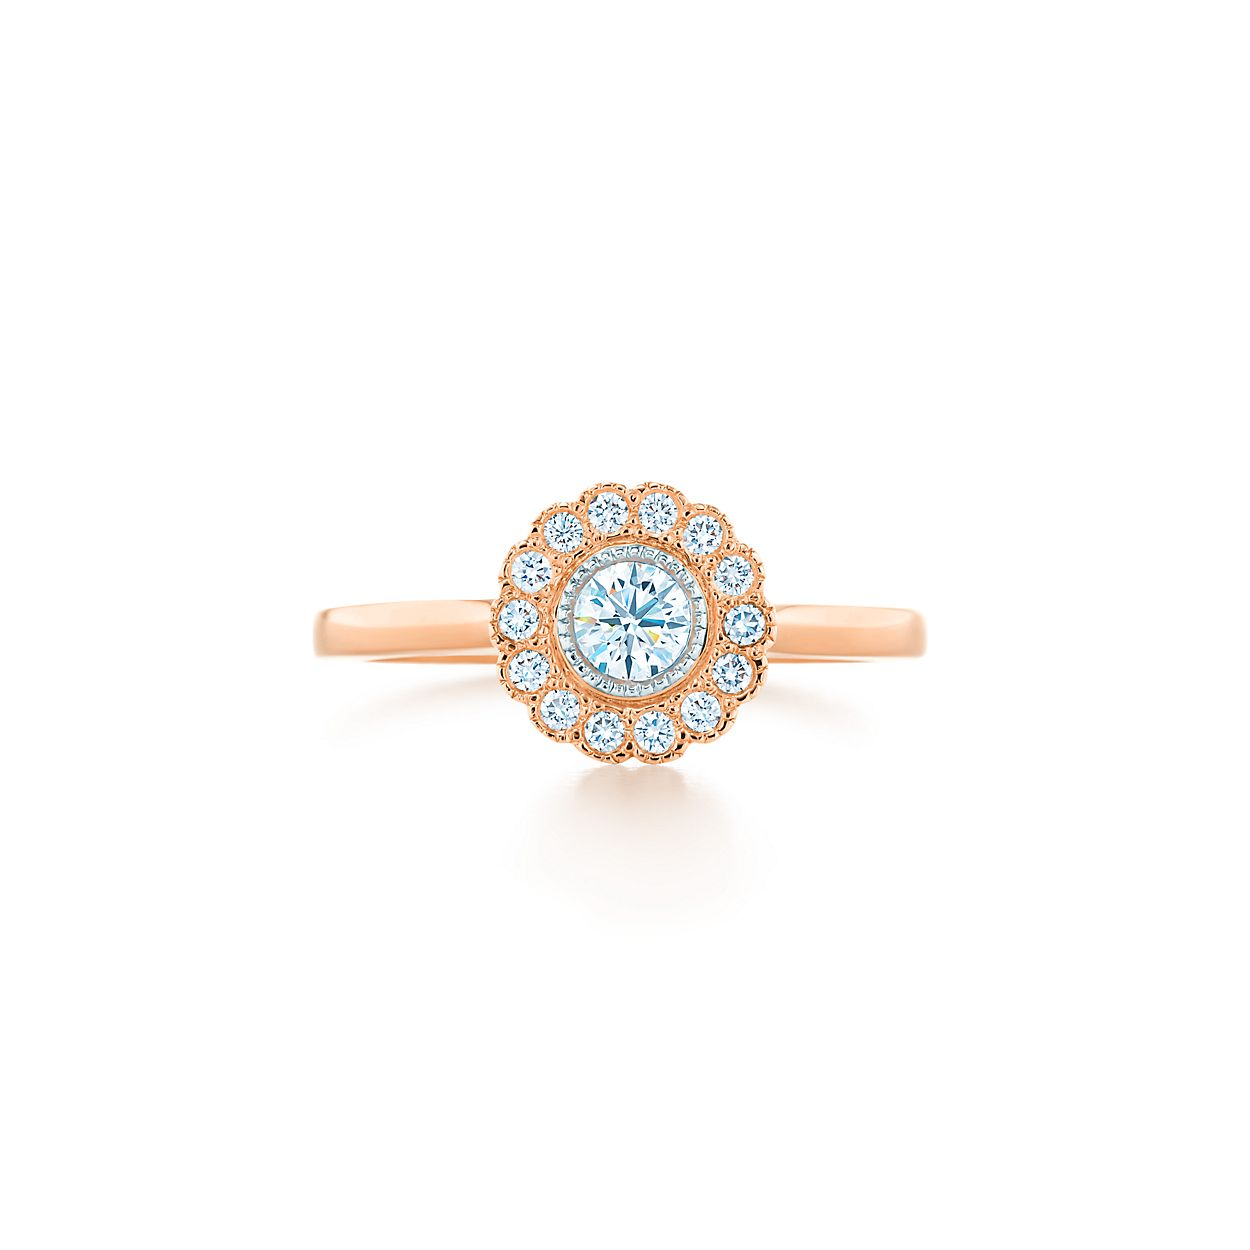 Tiffany Enchant Flower Ring In Platinum And 18k Rose Gold With